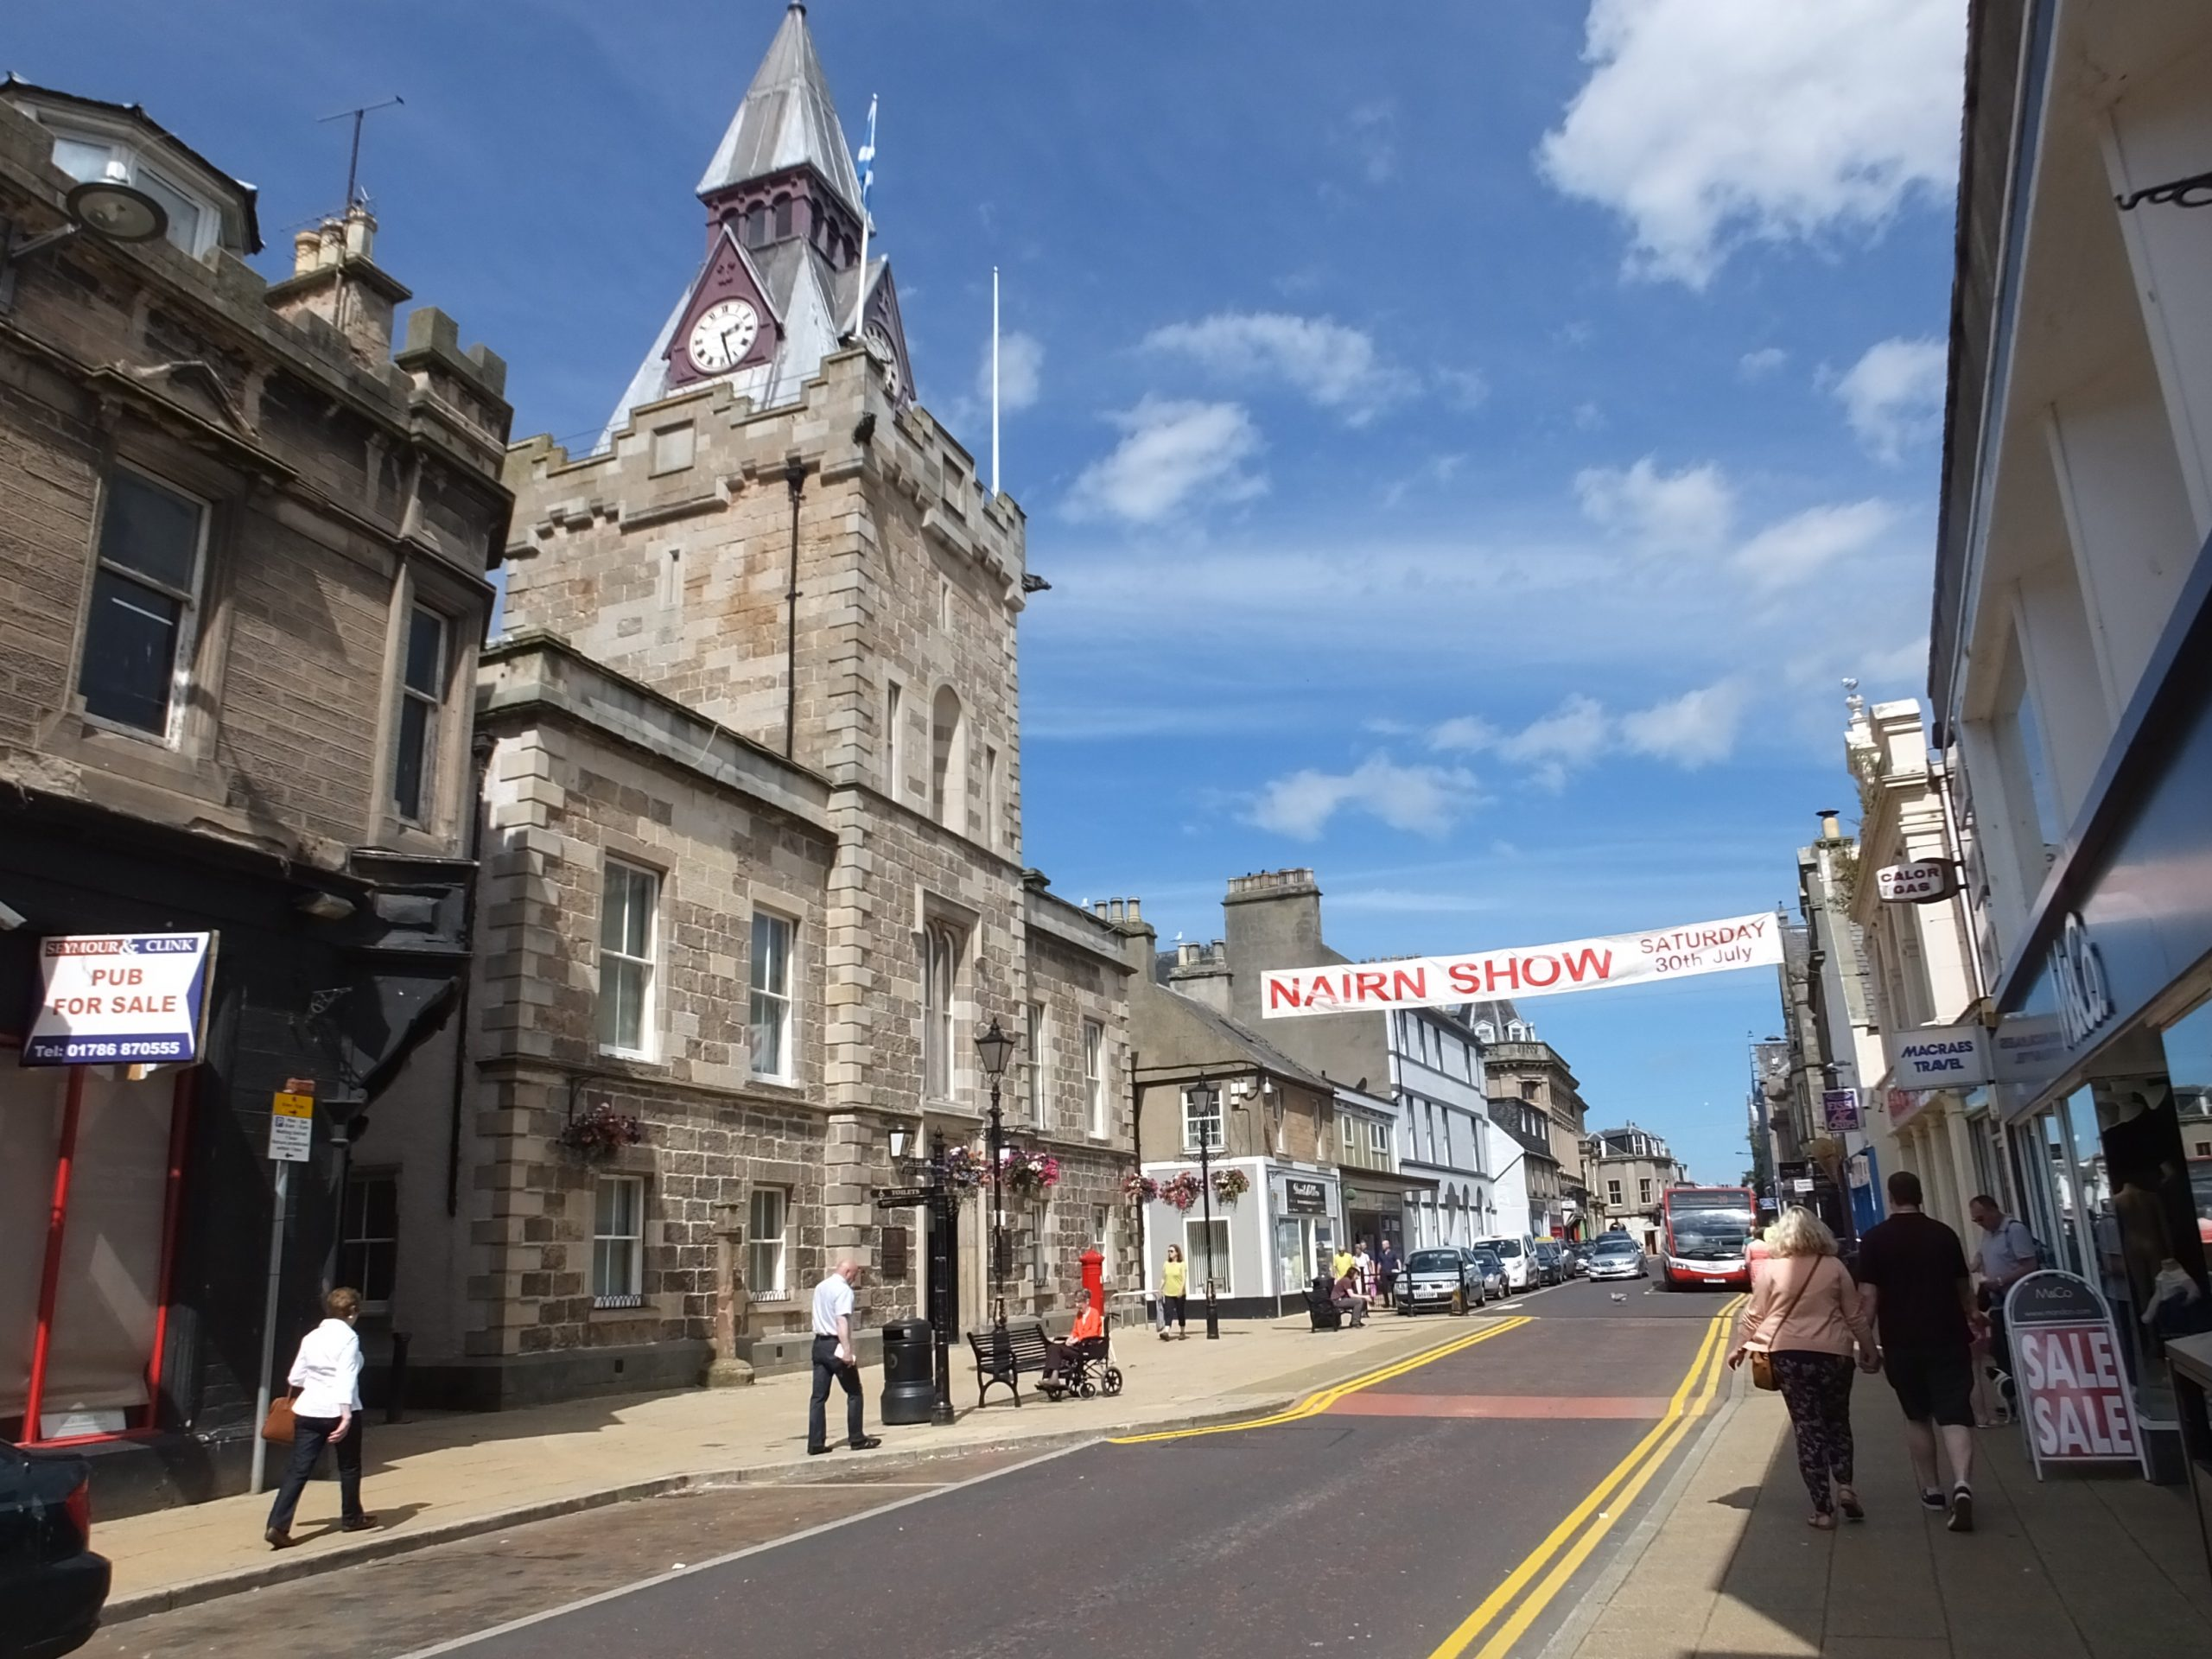 Nairn High Street - with traditional shops, restaurants, and quality dining options